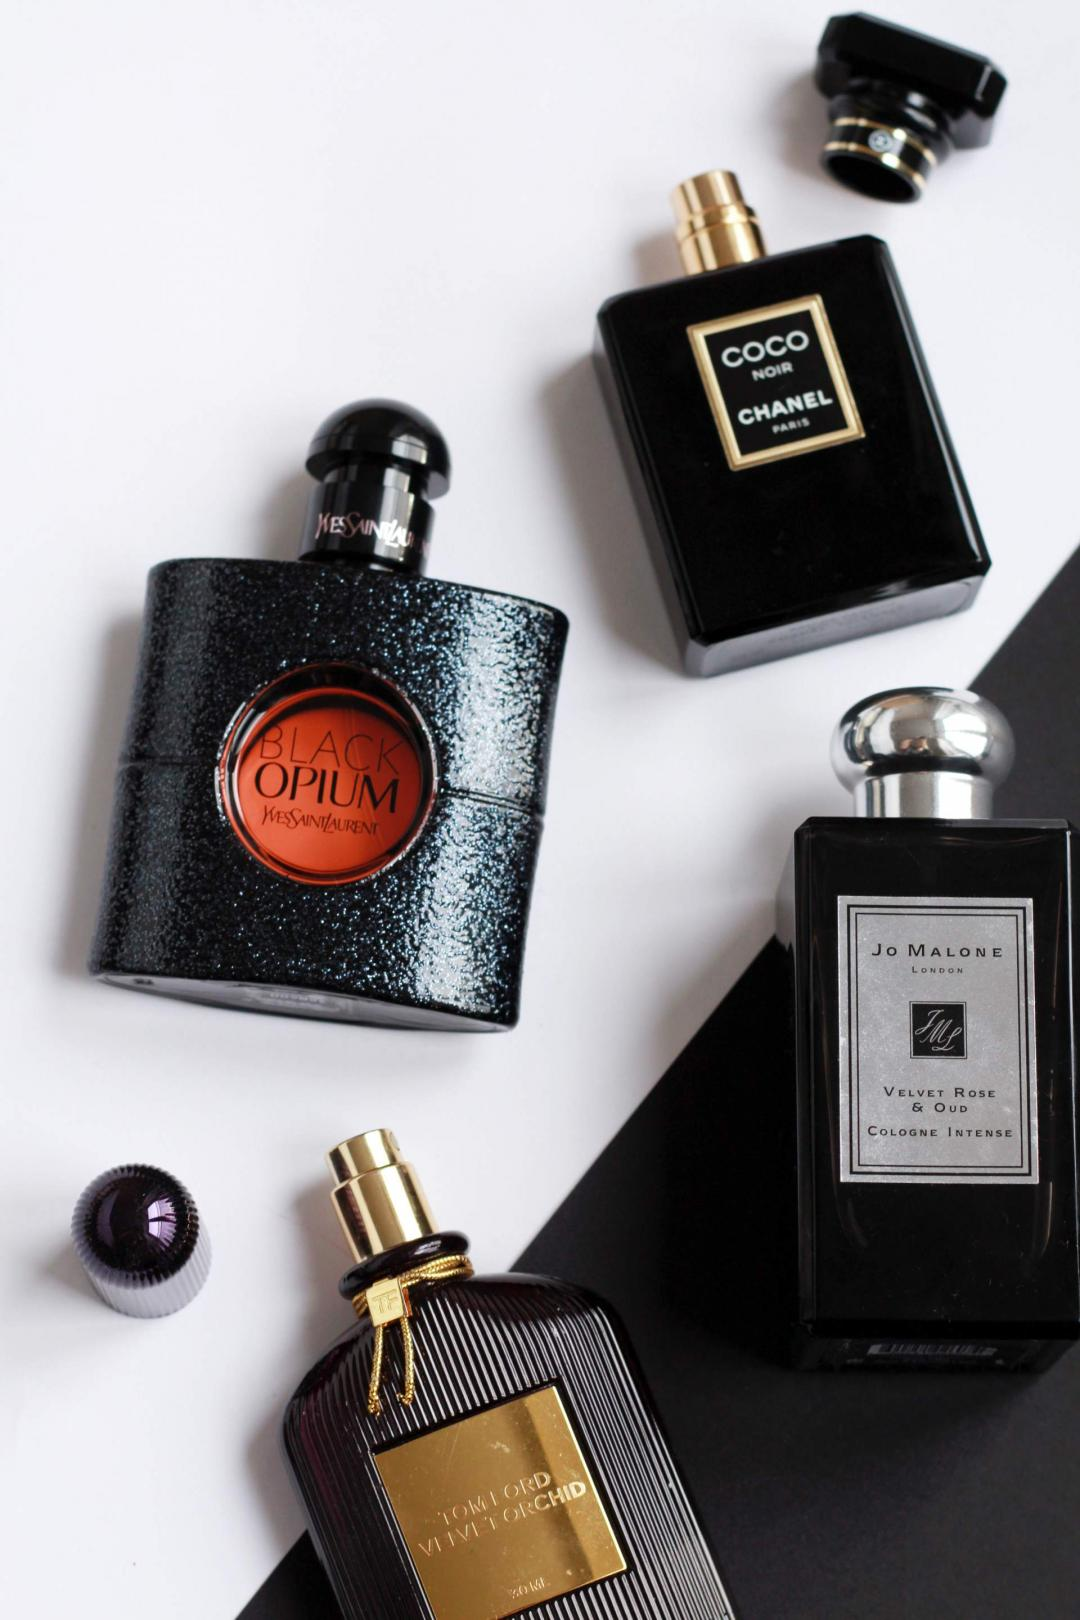 autumn-perfume-YSL-black-opium-jo-malone-rose-and-oud-tom-ford-velvet-orchid-chanel-noir